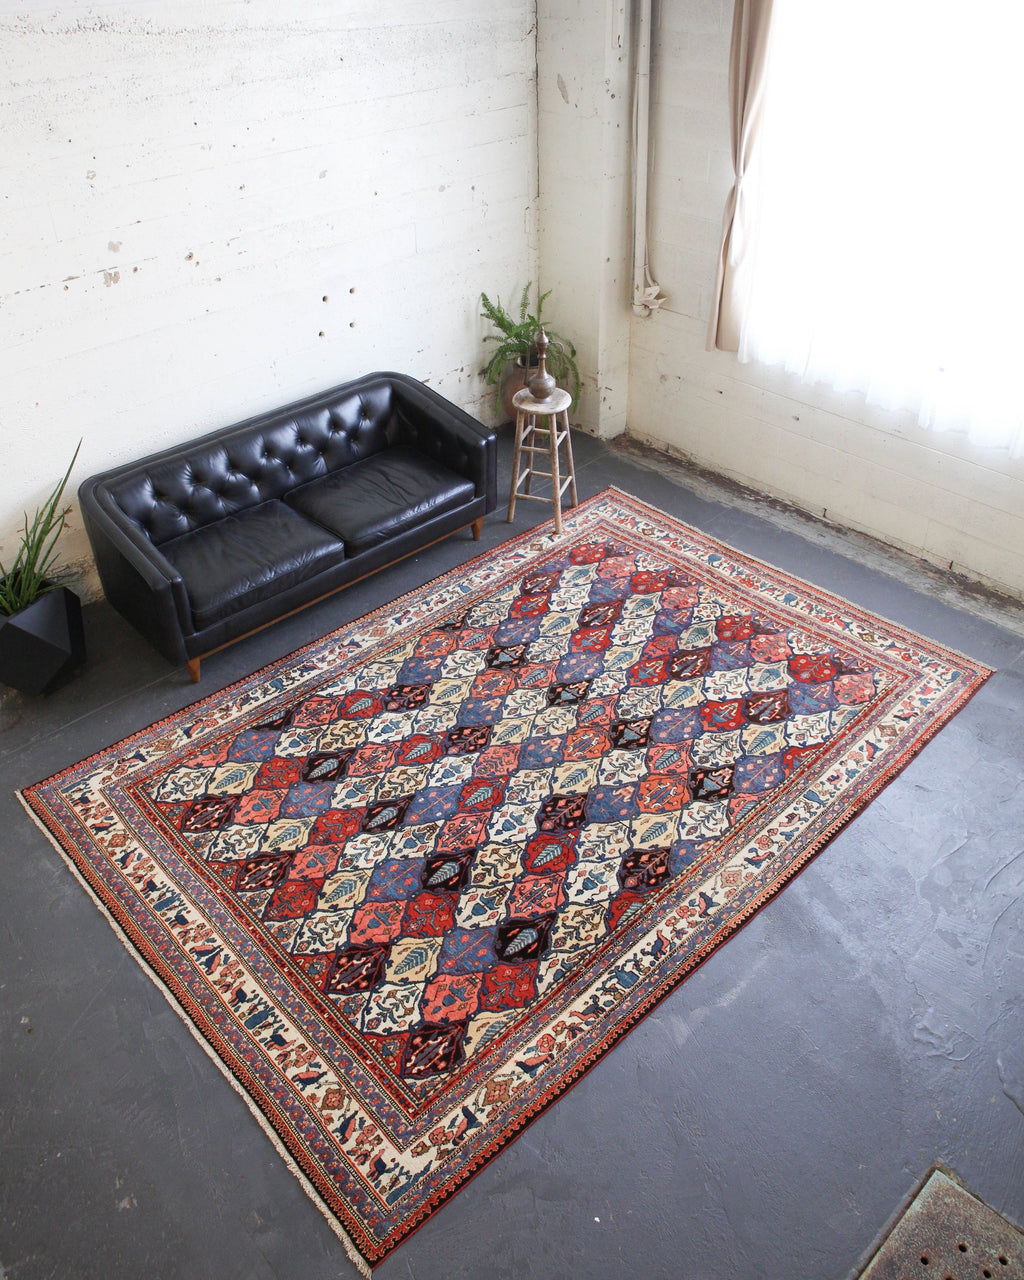 pile rug, Persian rug, vintage rug, portland, rug shop, bright colors, wild shaman, soft rug, bold color, Portland, Oregon, rug store, rug shop, local shop